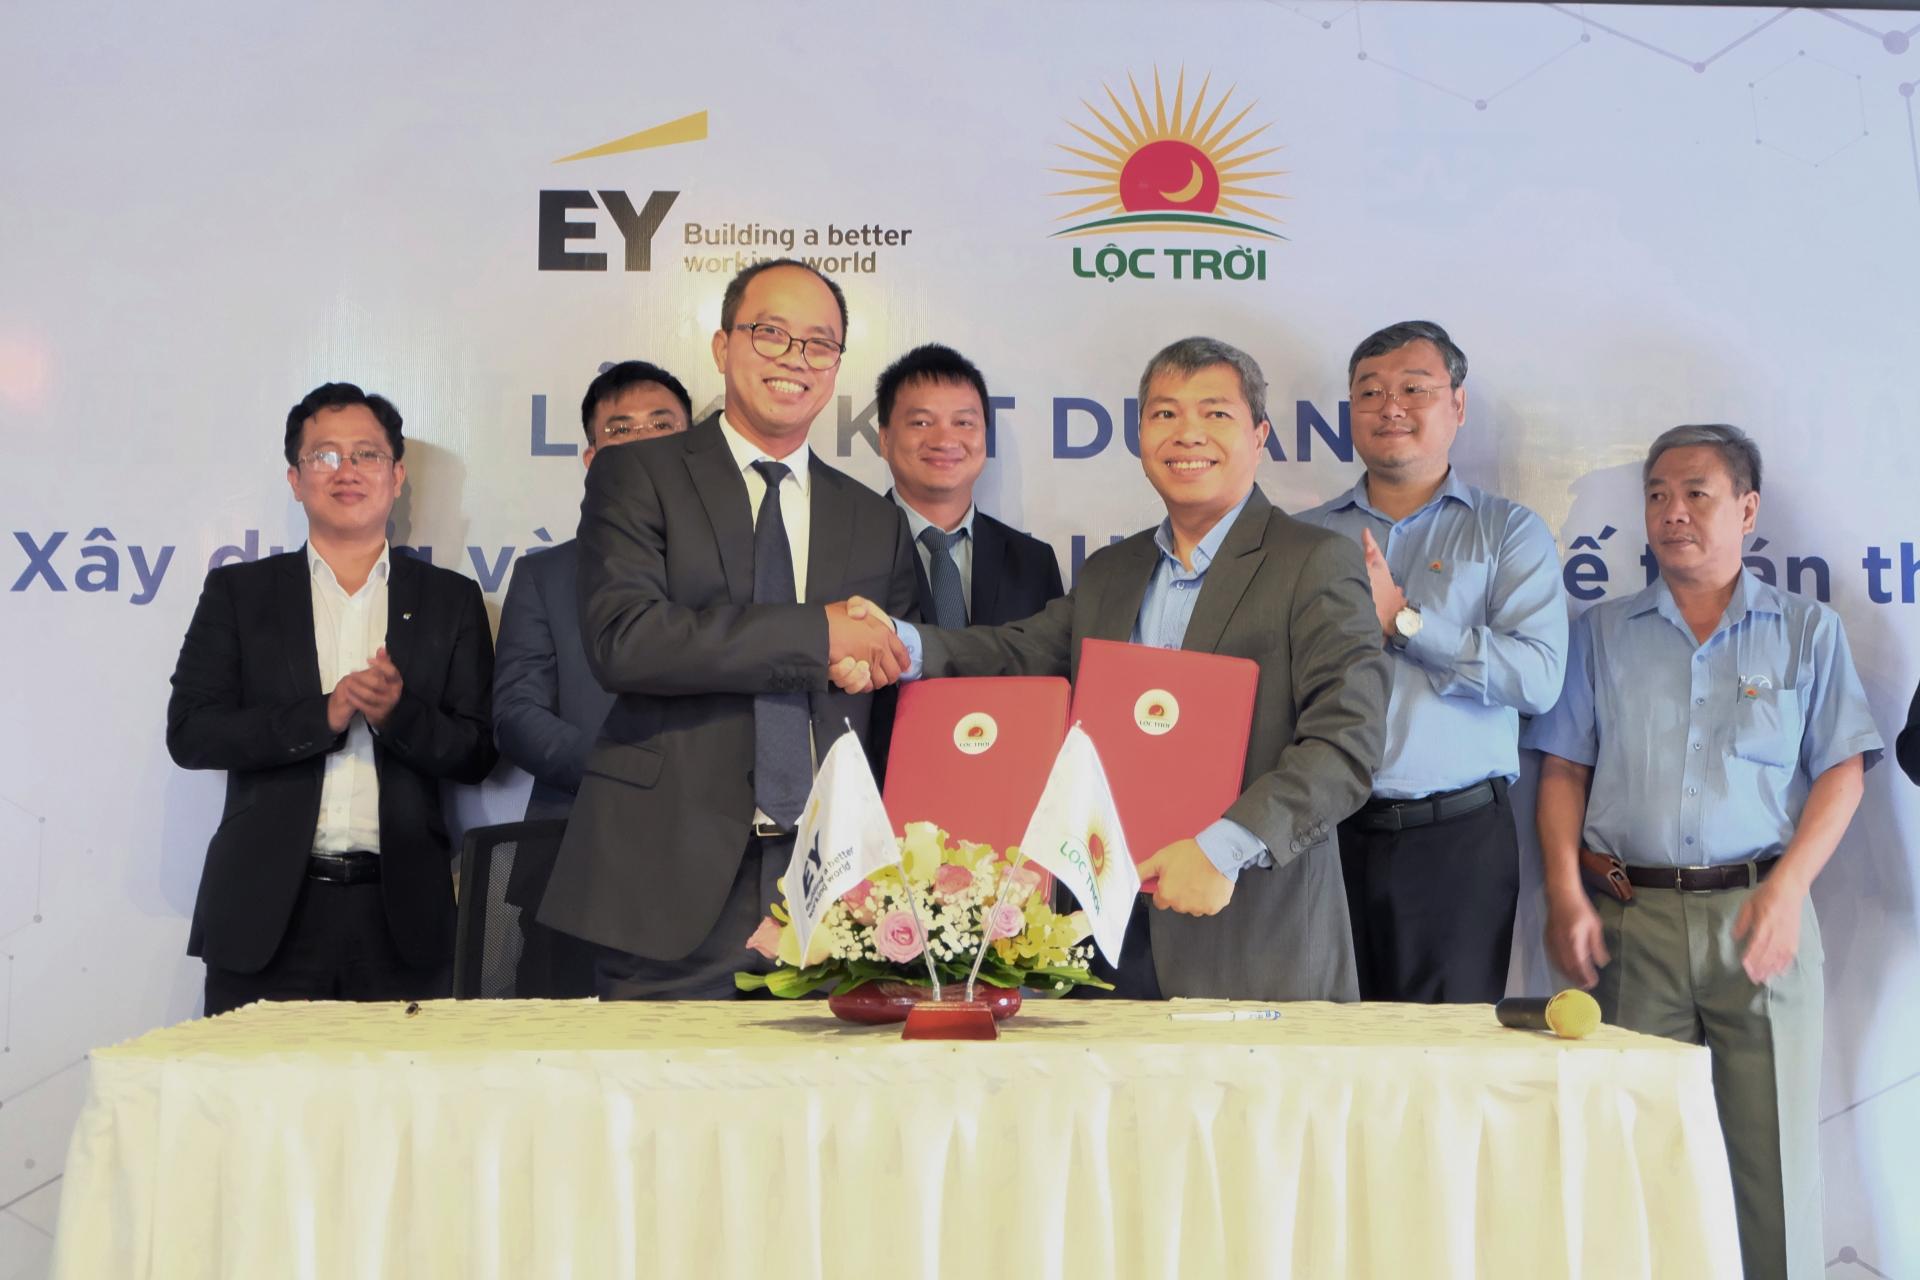 EY Vietnam collaborates with Loc Troi Group for IFRS adoption